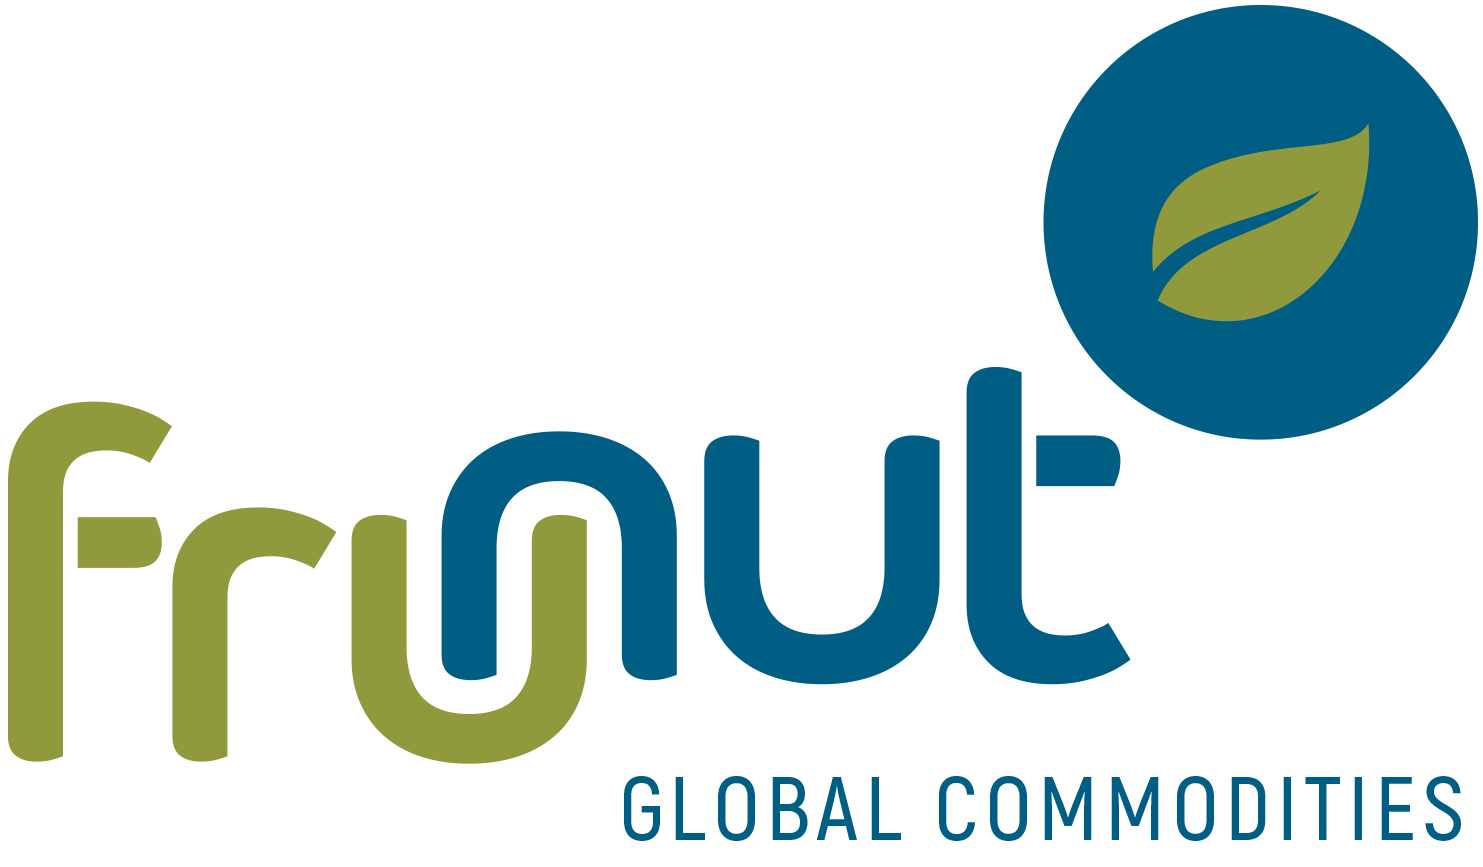 Frunut Global Commodities